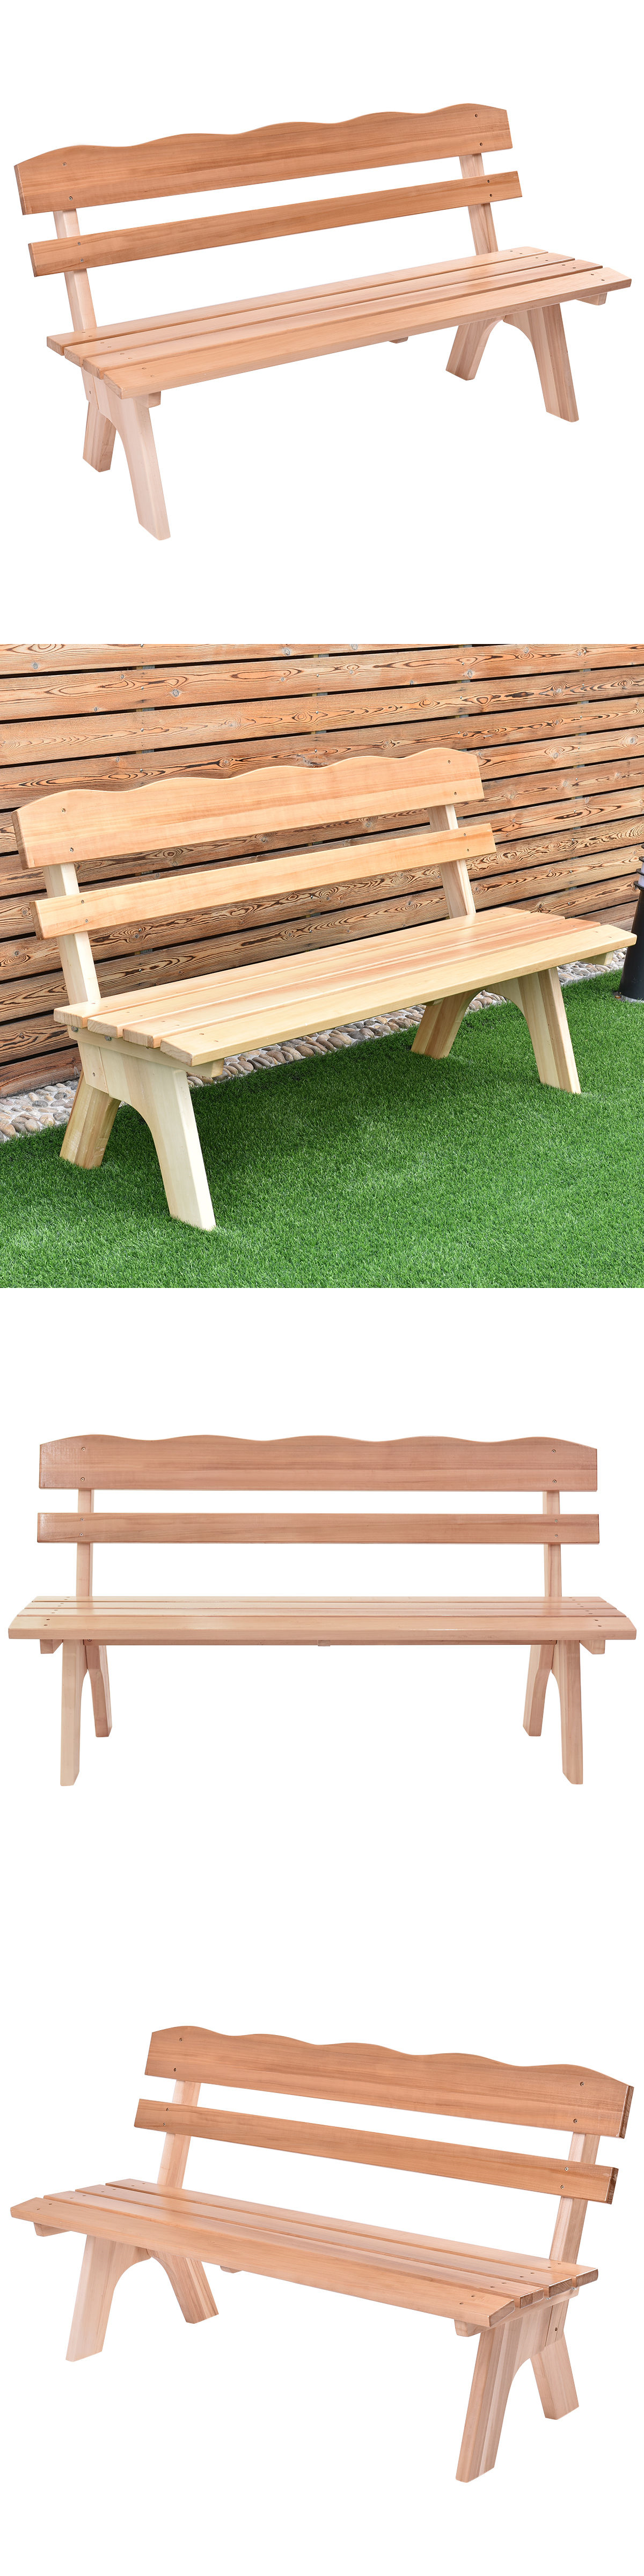 Benches 79678: 5 Ft 3 Seats Outdoor Wooden Garden Bench Chair Wood Frame  Yard Deck